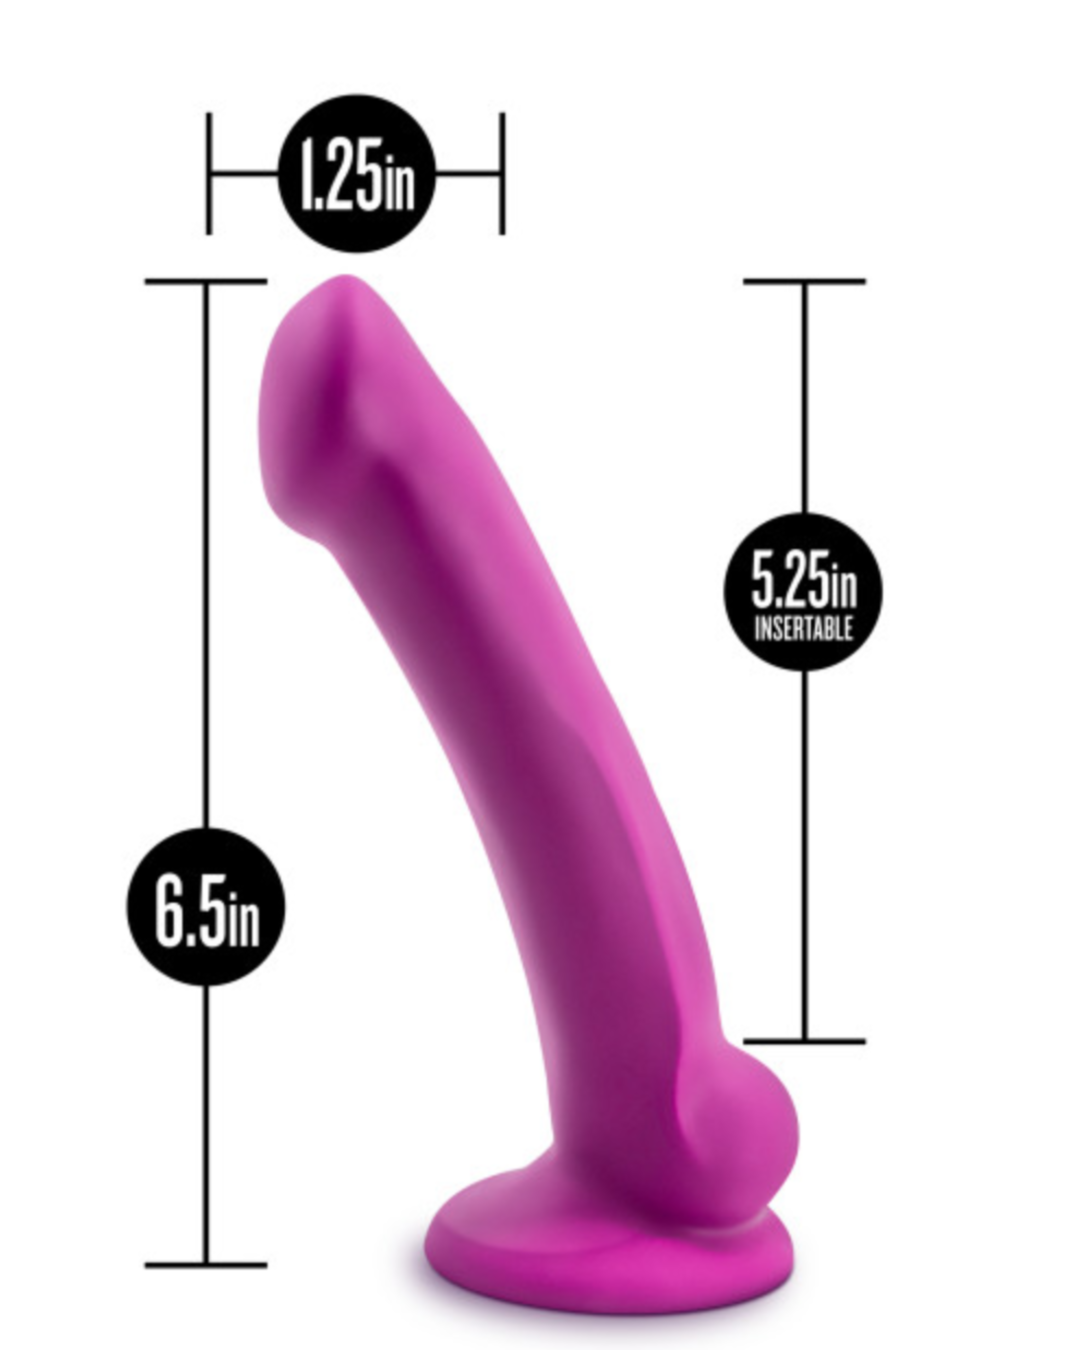 Avant D9 Ergo Mini Violet 6.5 Inch Dildo by Blush Novelties measurements